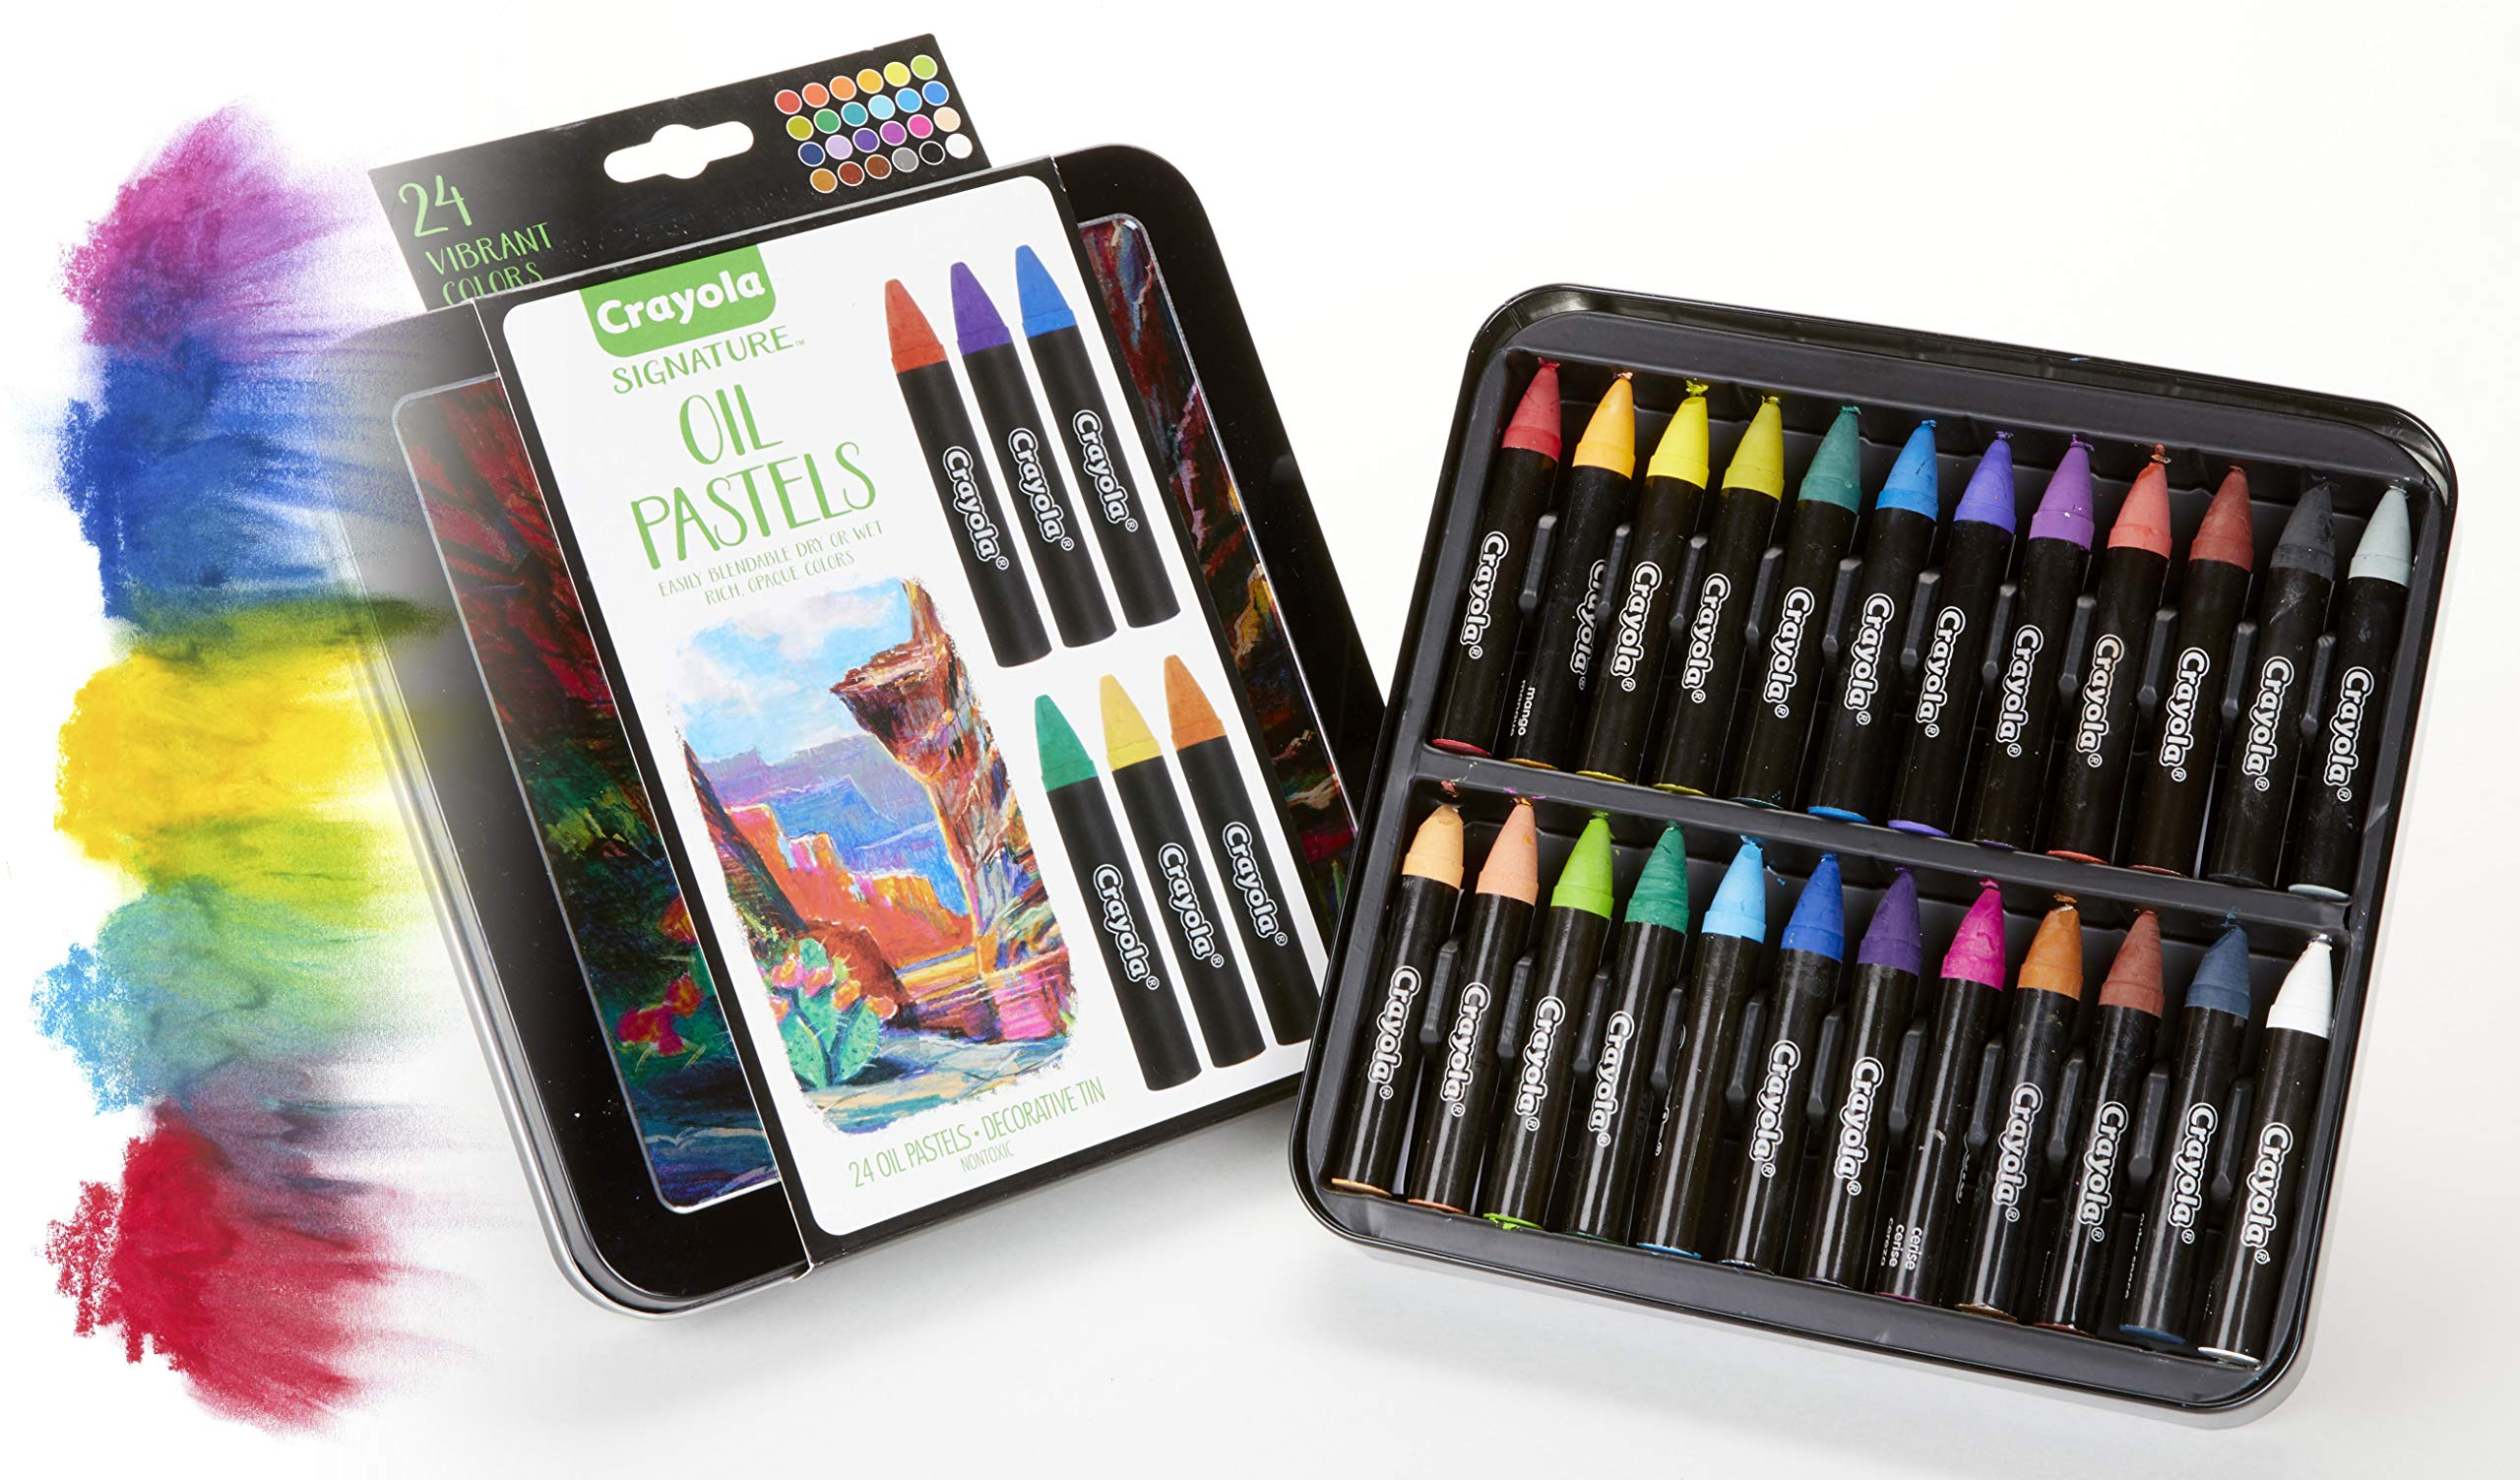 Crayola Oil Pastel Set with Decorative Case, Water-Soluble, Great For Watercolor Effects, 24 Colors by Crayola